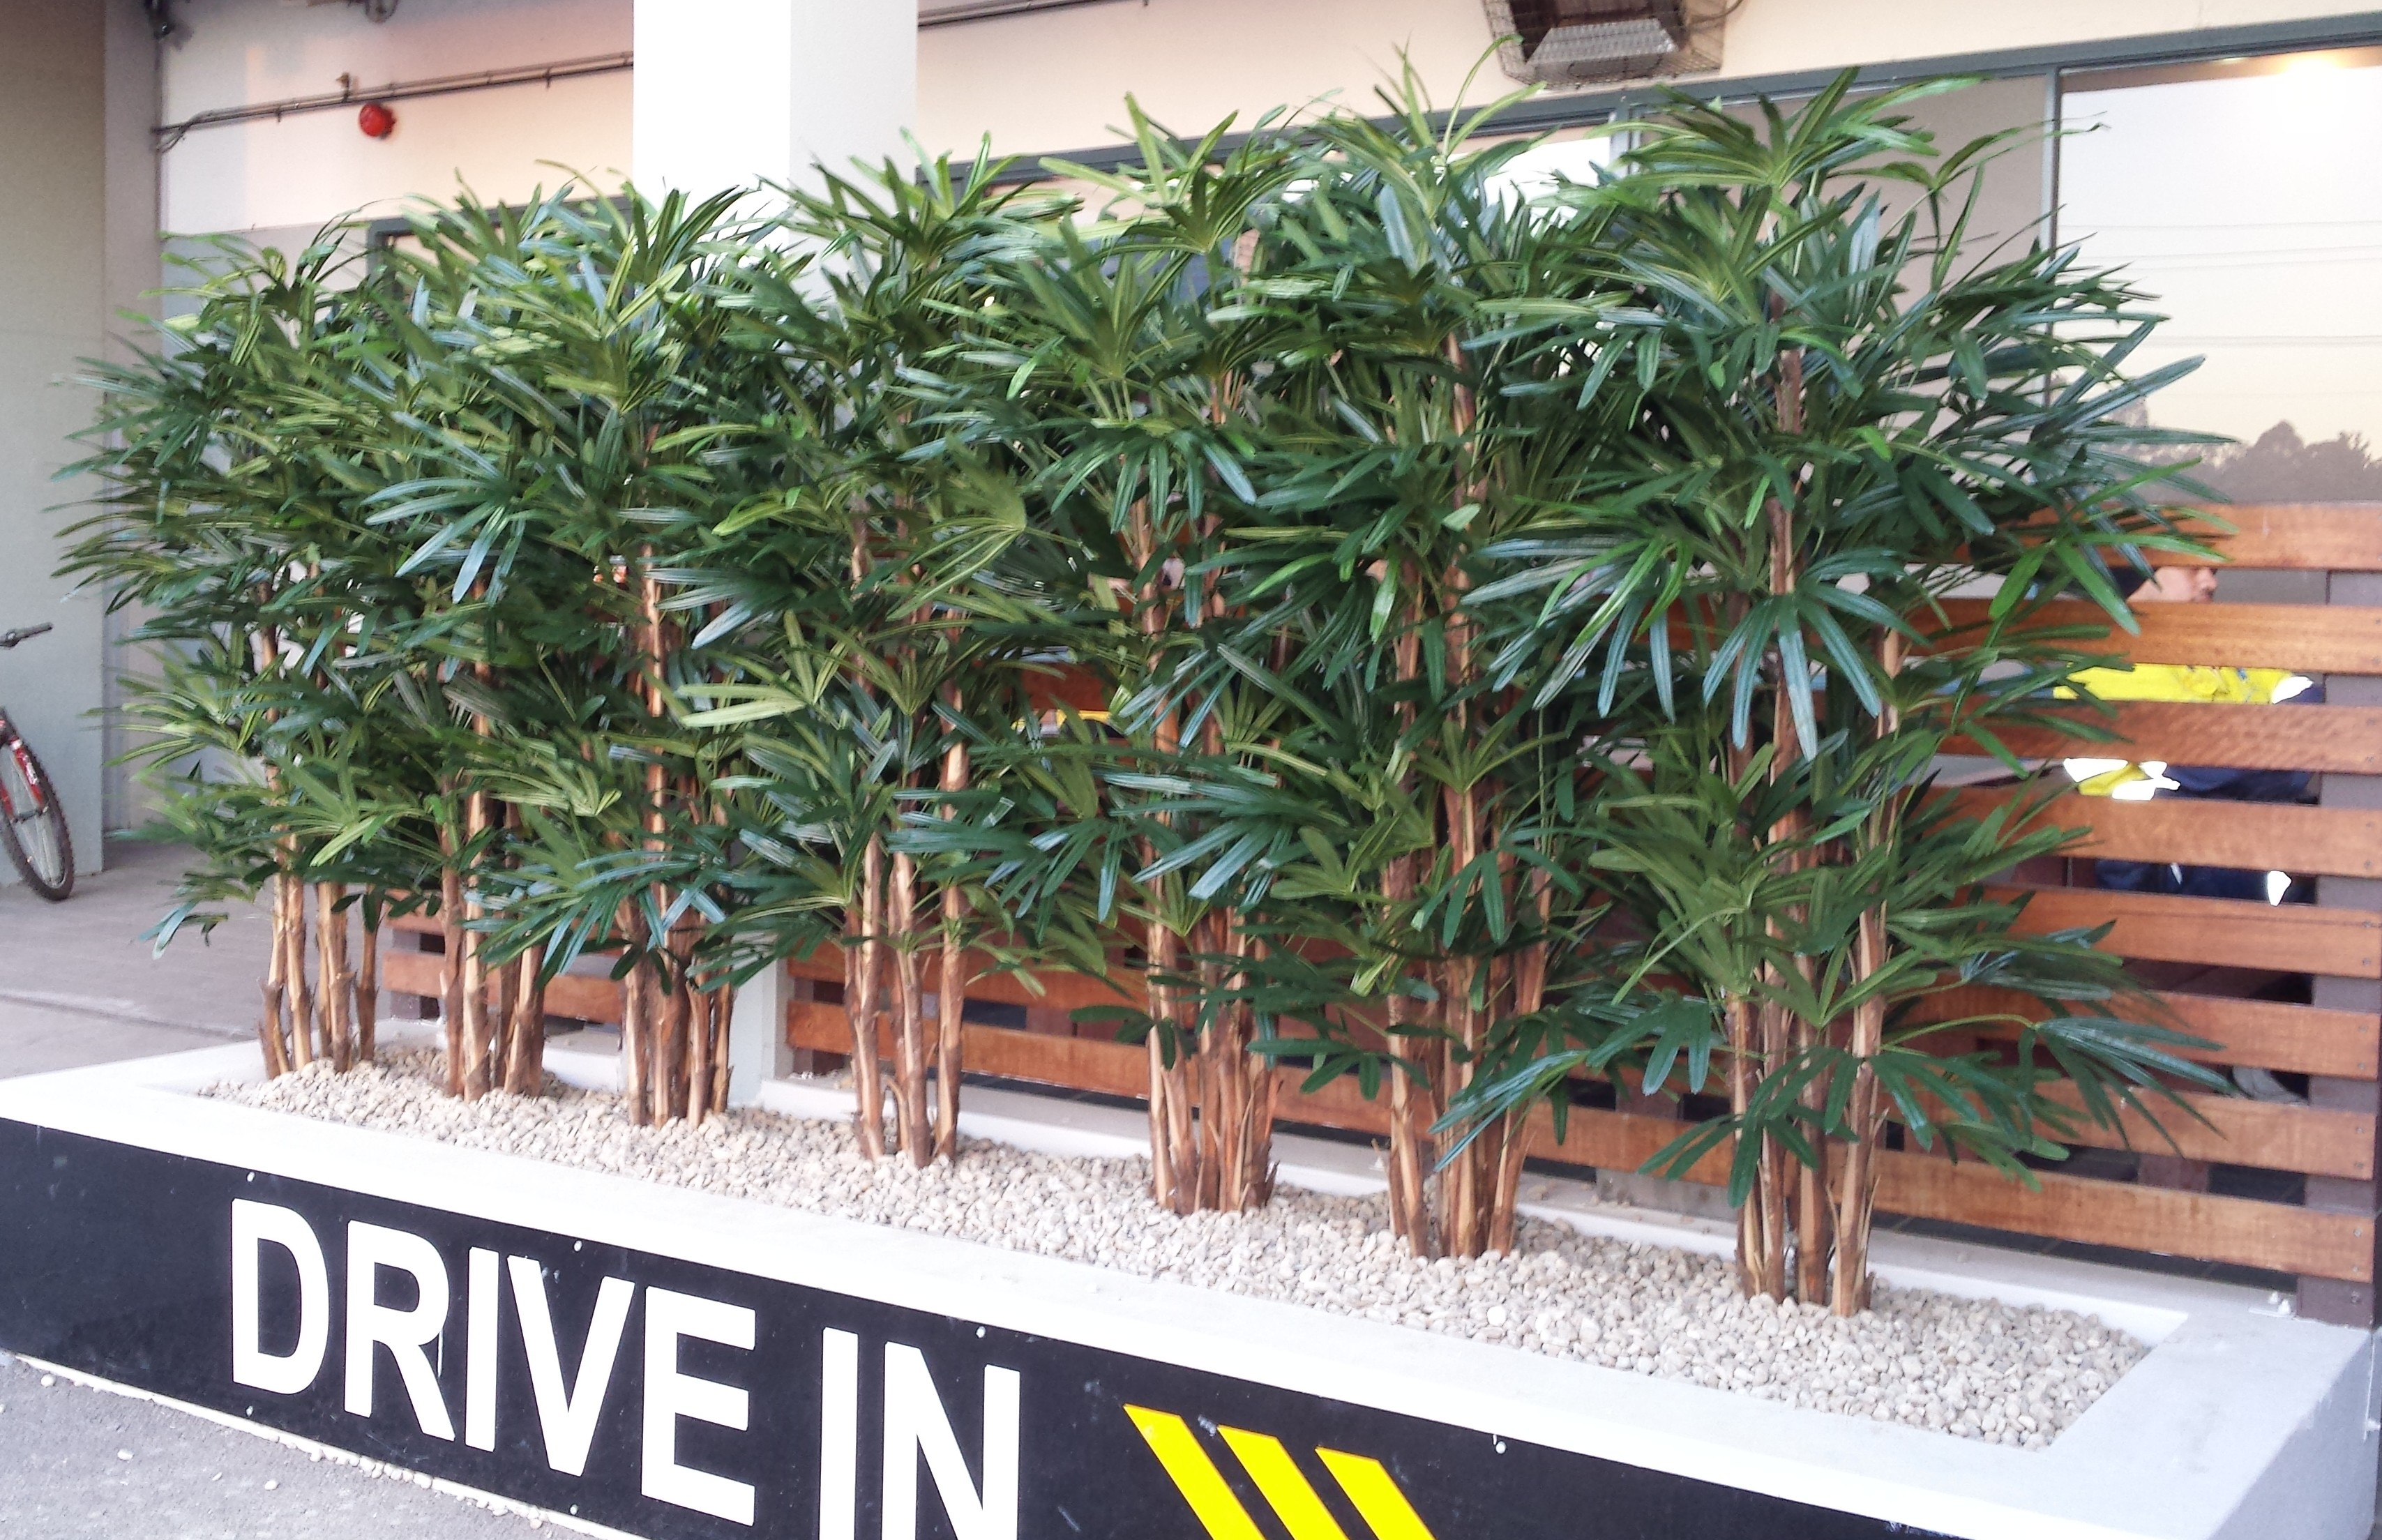 The First Planter Box Is At The Front Entrance To The Cambeltown Hotel,  Daniel Used Seven 2.4m Raphis Palms And Filled The Planter Box With Stones,  ...